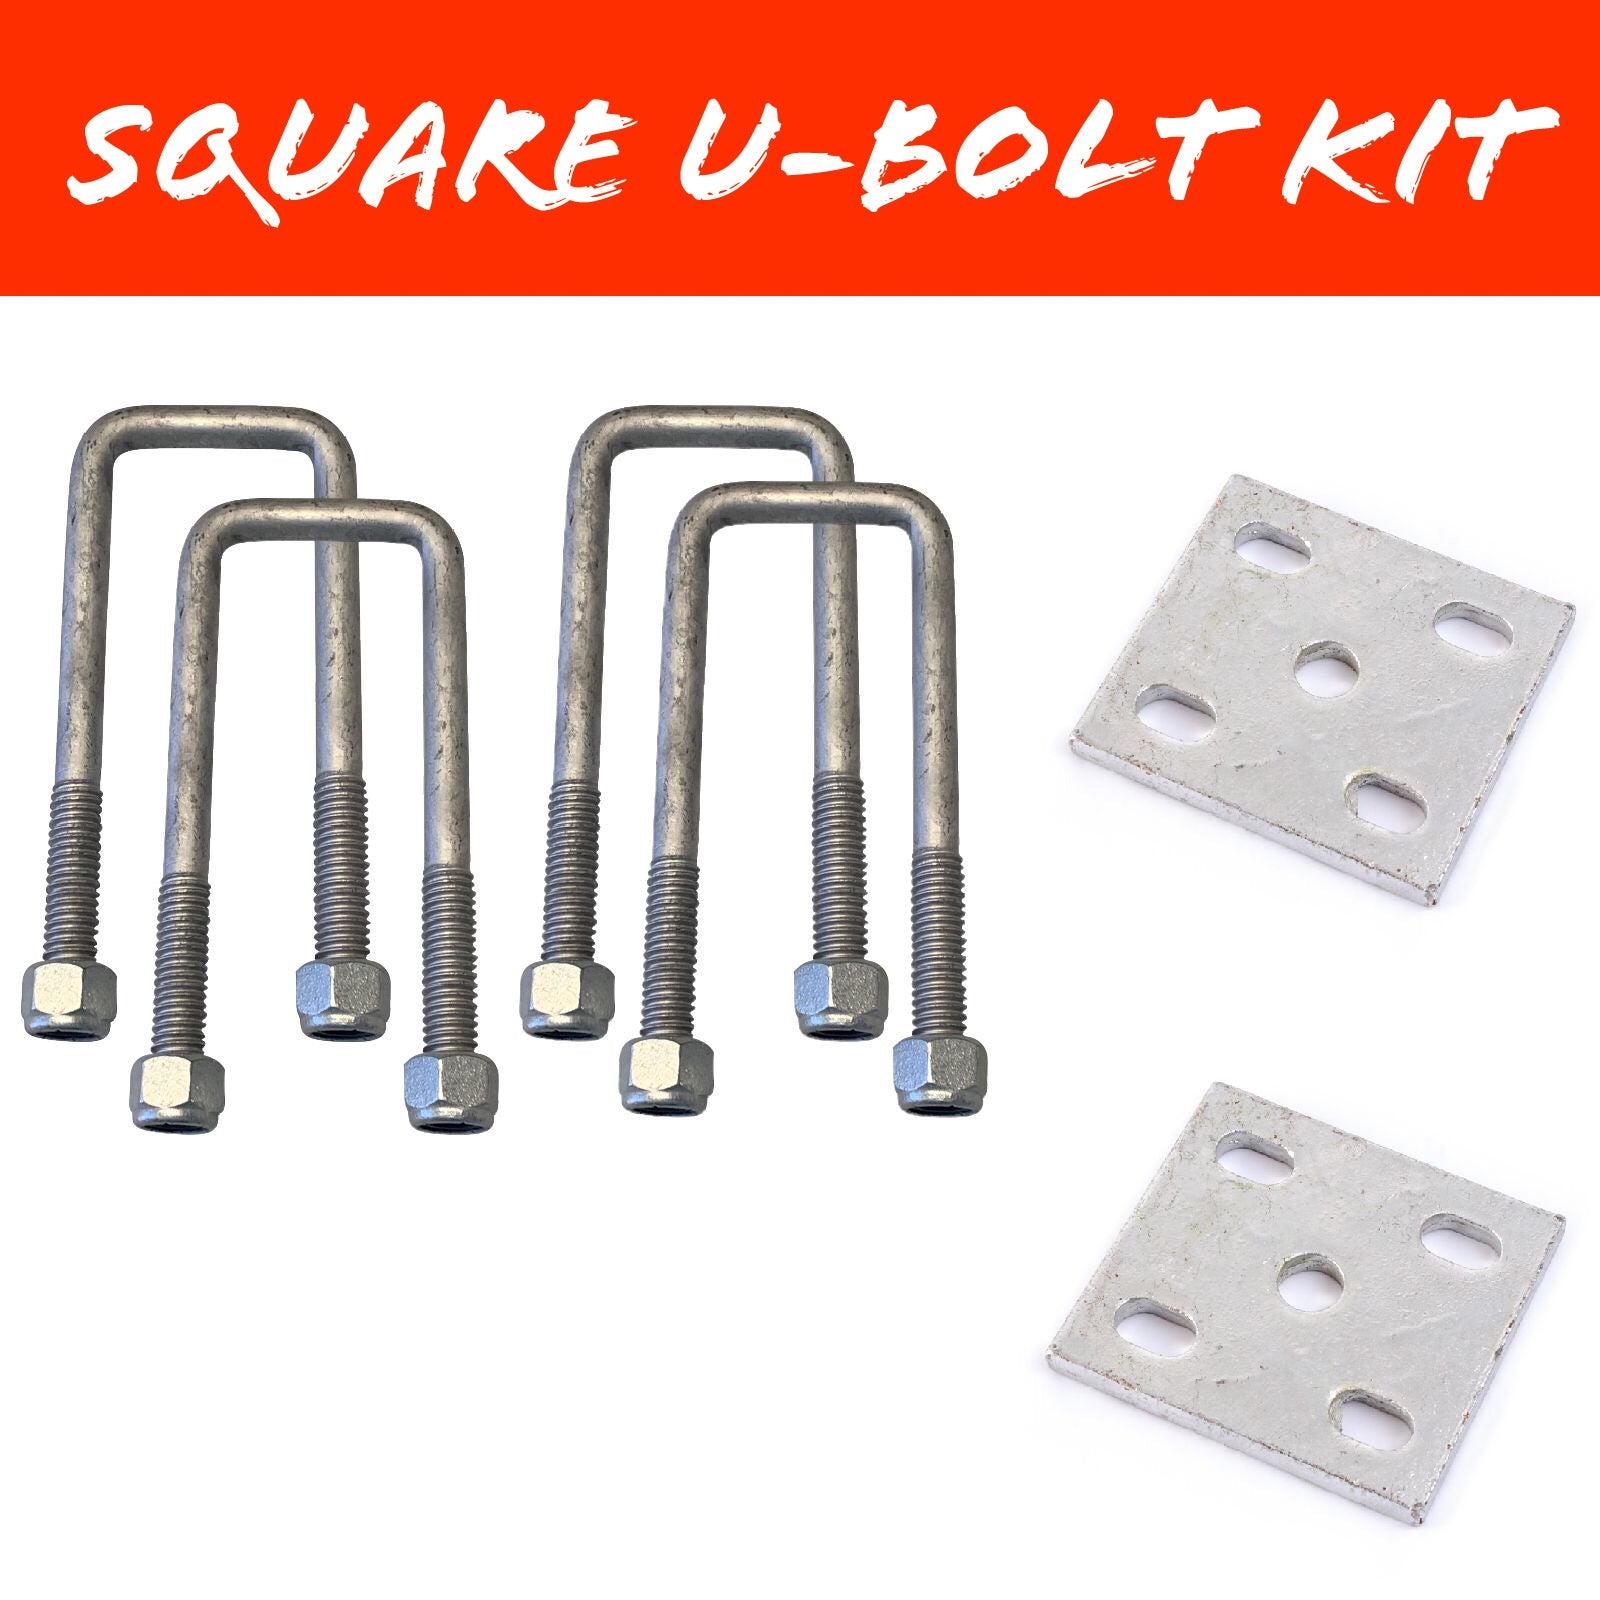 45mm x 140mm SQUARE U-BOLT KIT